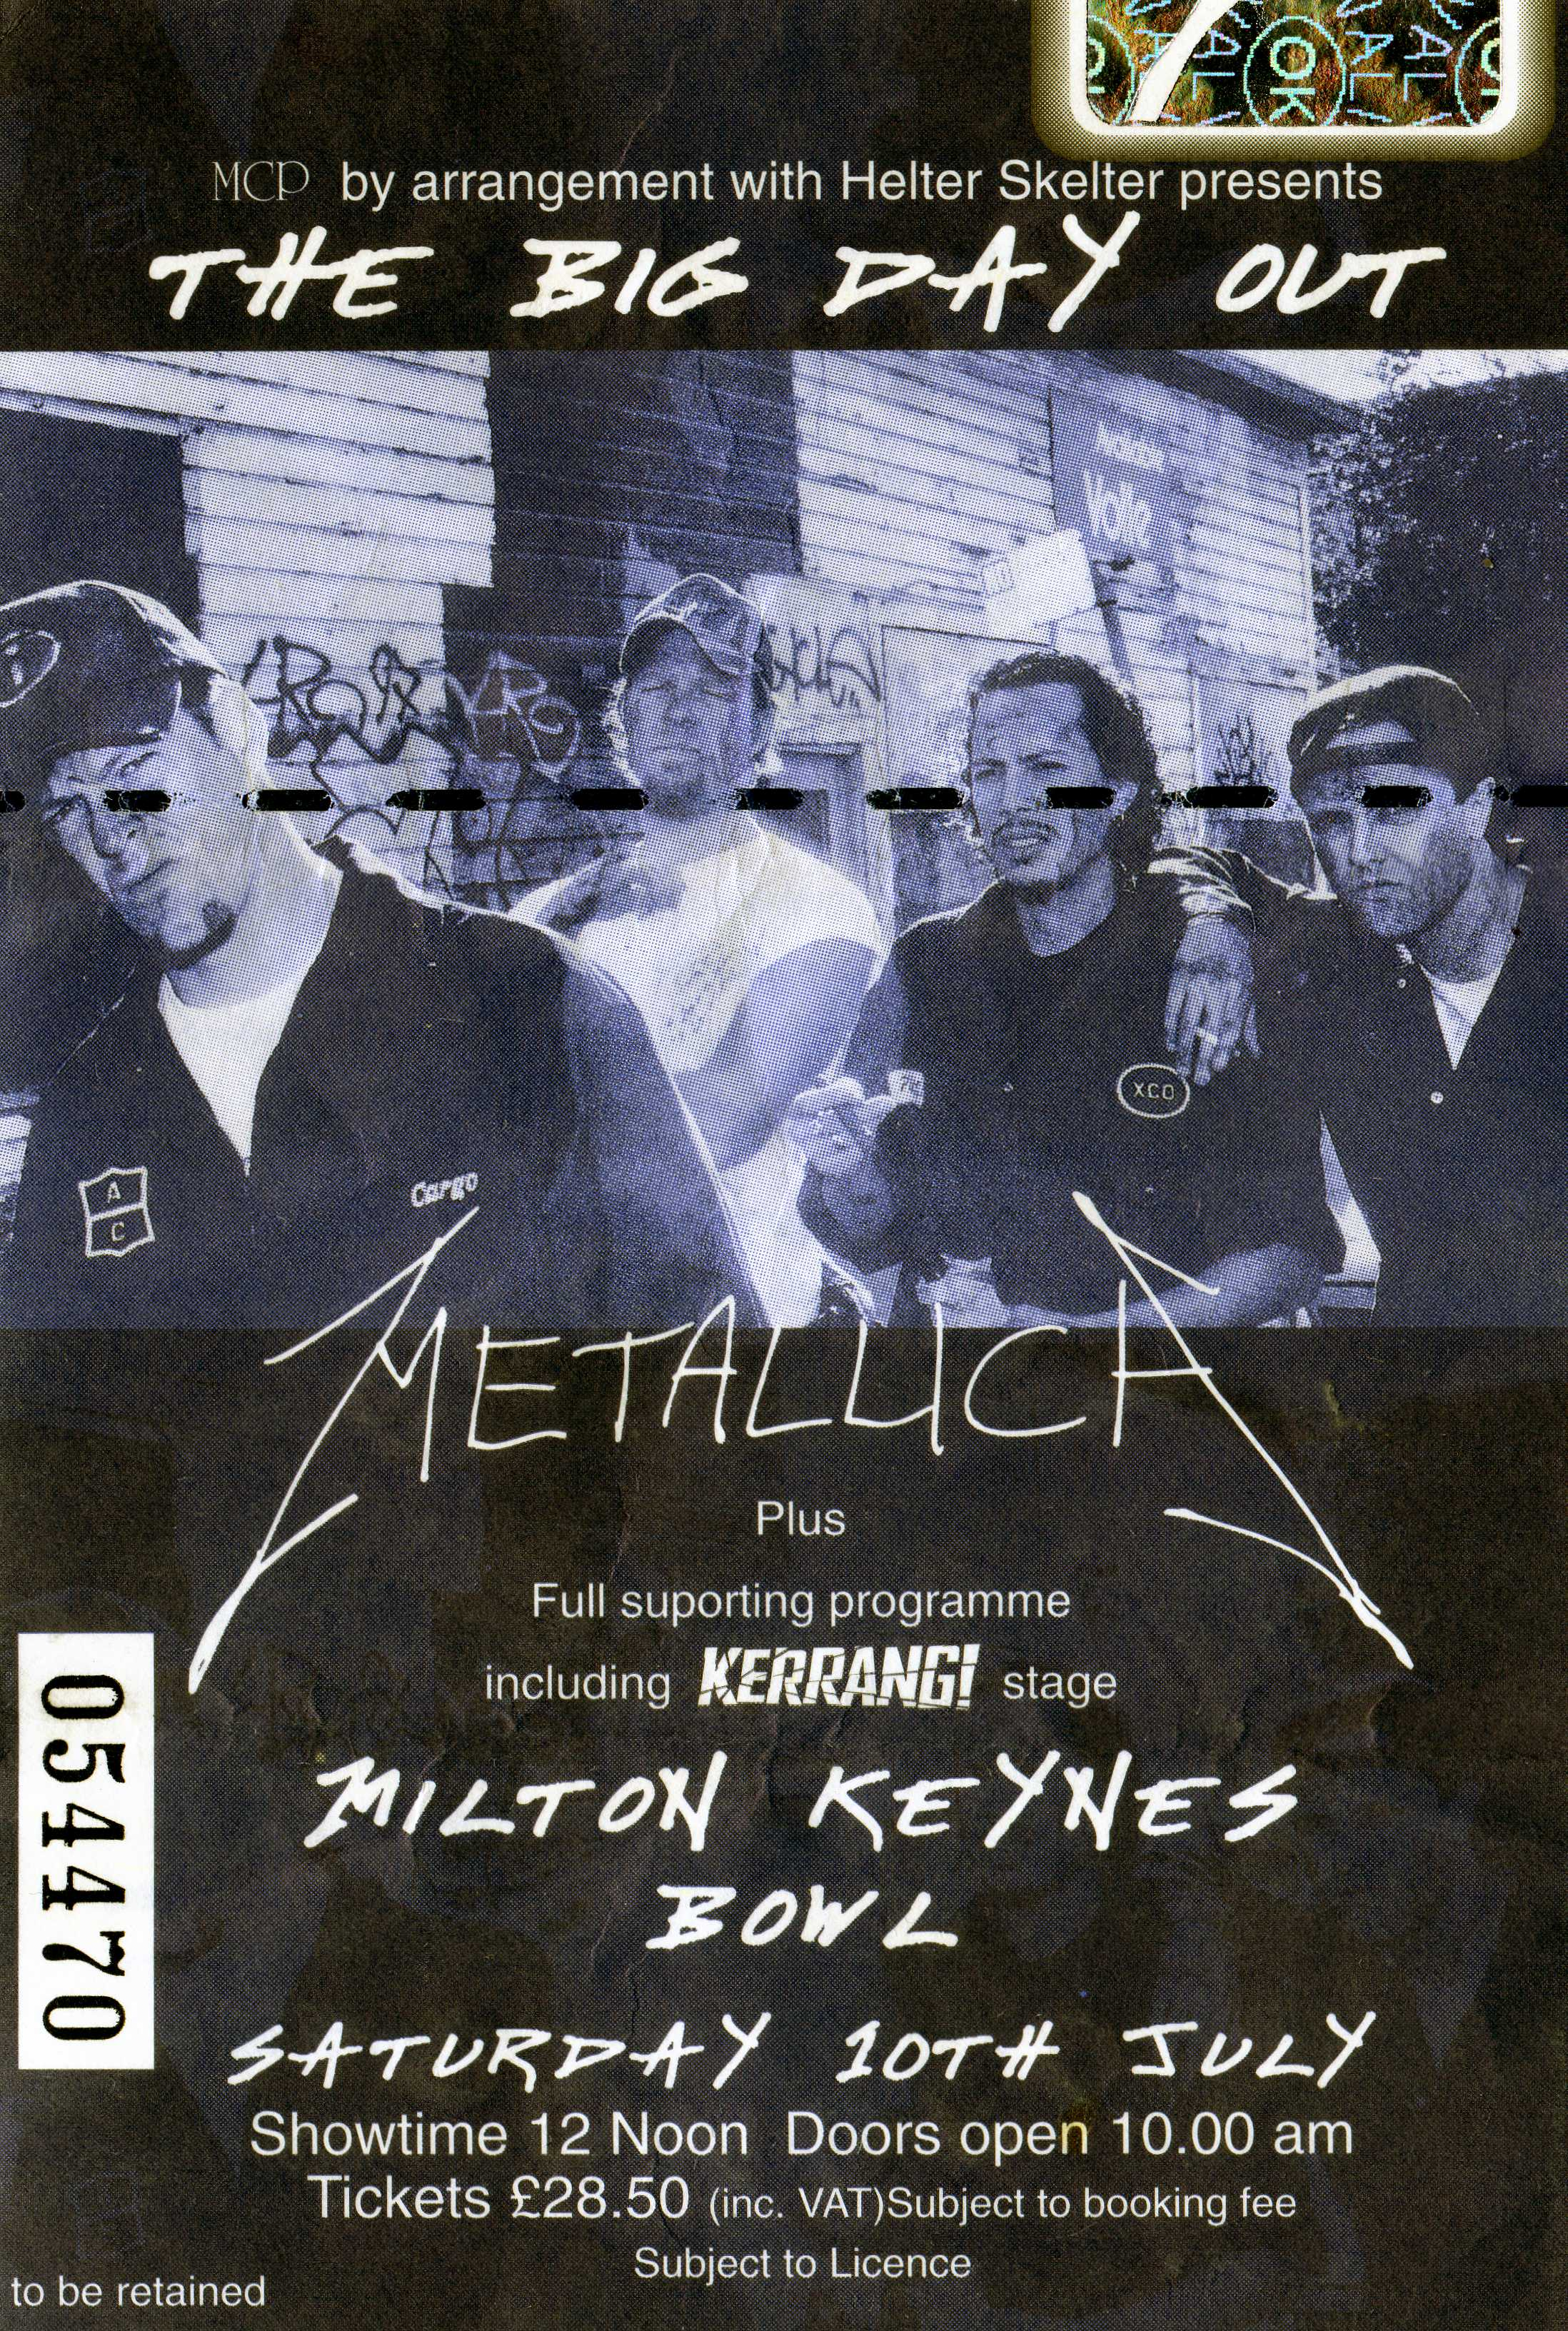 July 10, 1999 performance at The Milton Keynes Bowl in Milton Keynes, England.